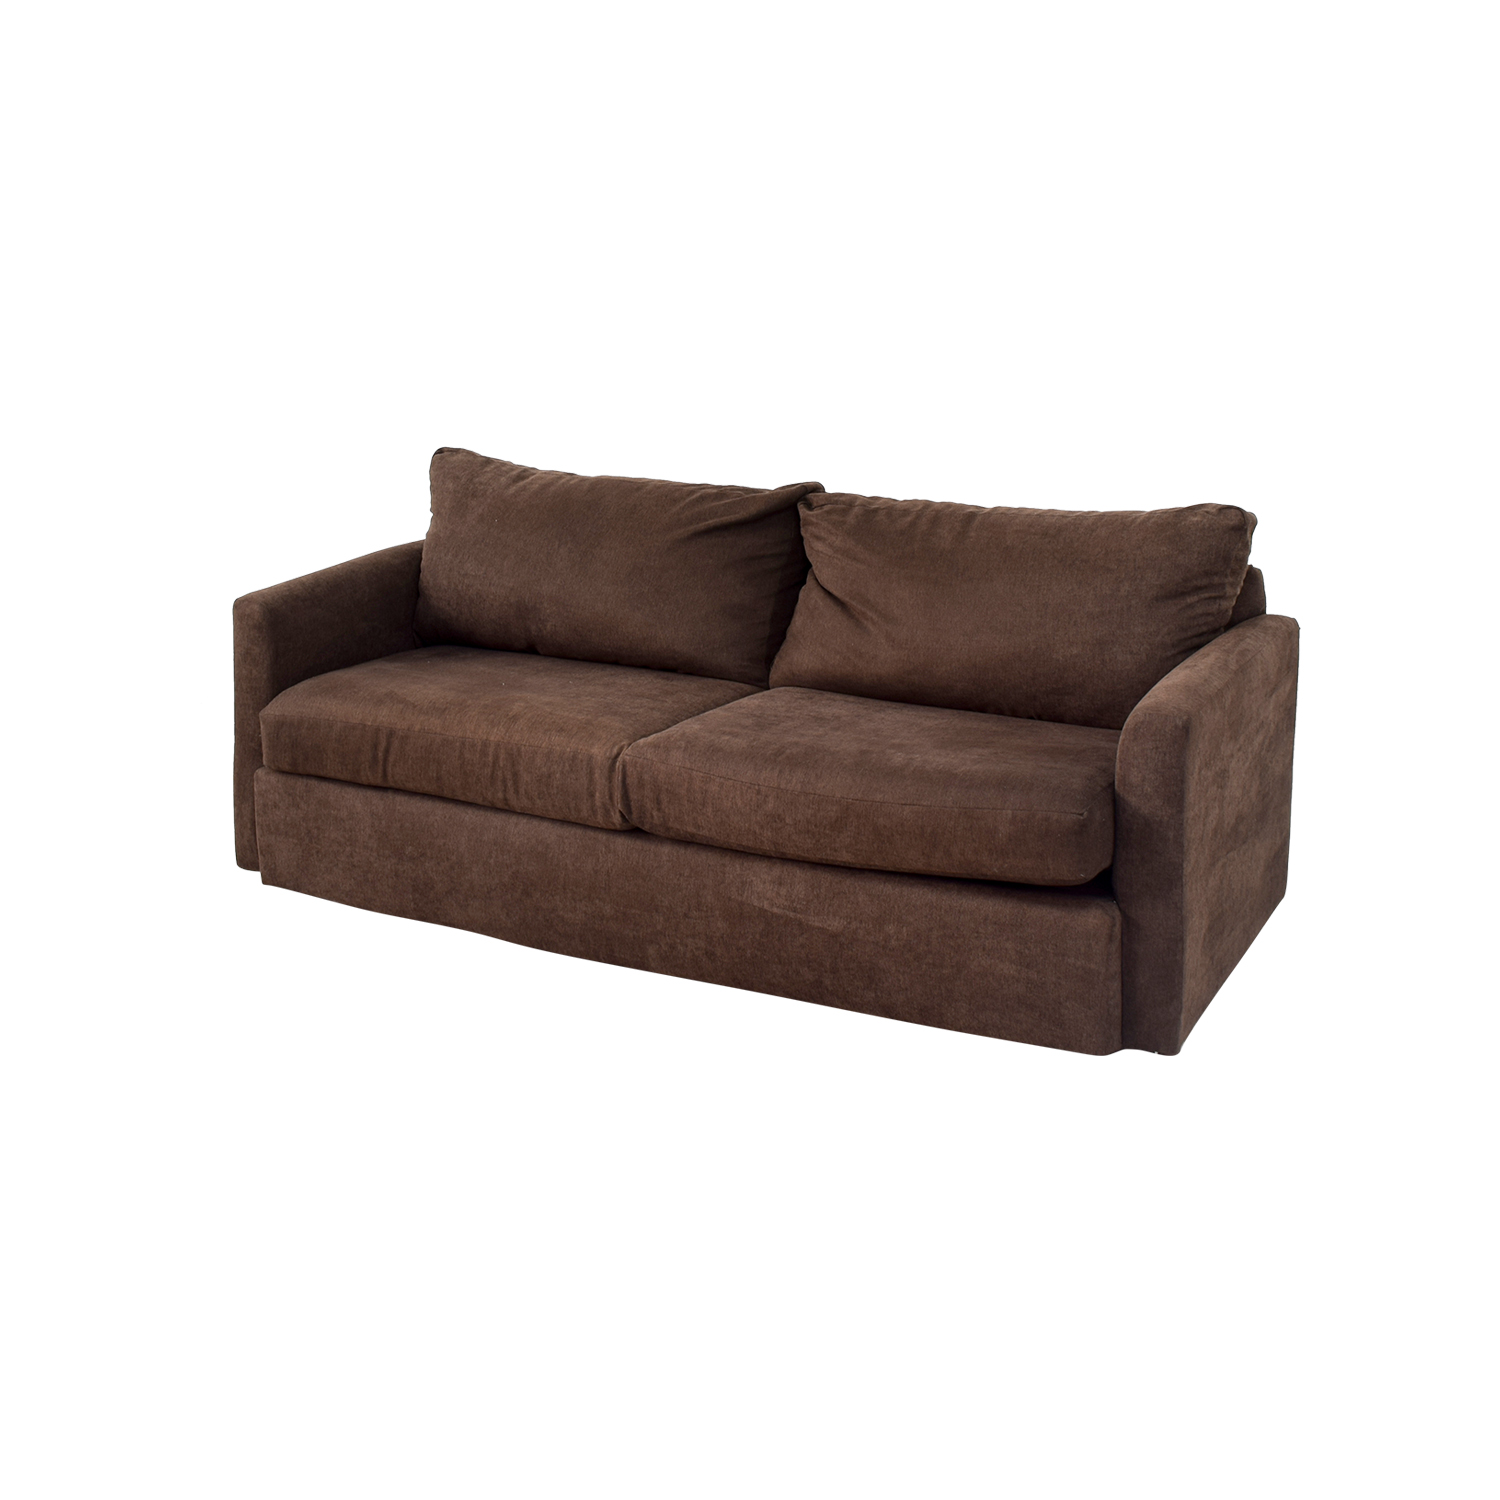 Loveseat Sofa Bed Bobs